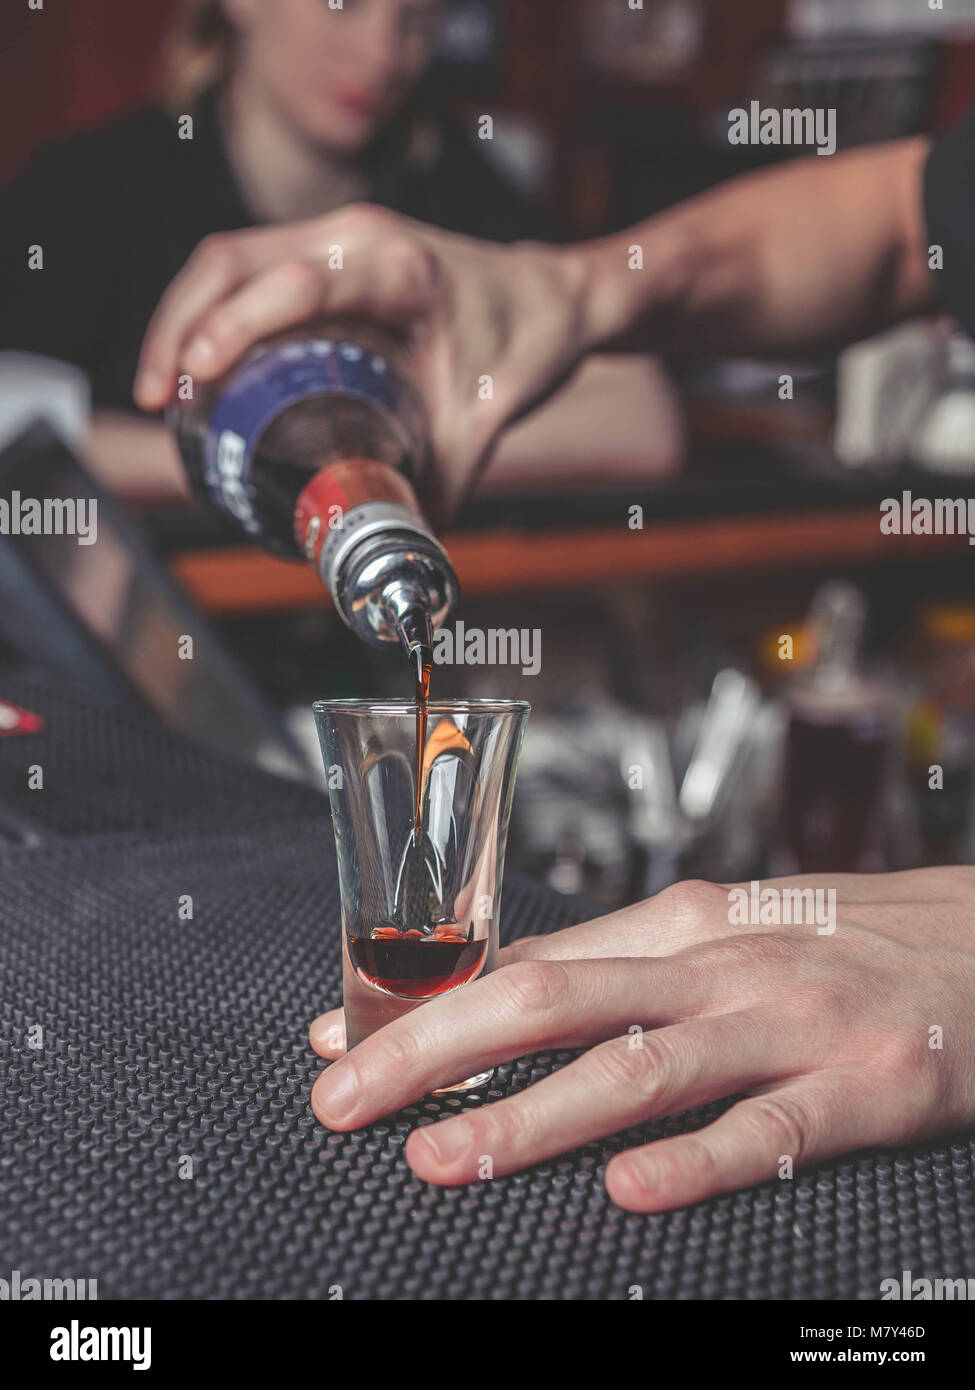 The barman pours liquor into a glass on the bar counter - Stock Image